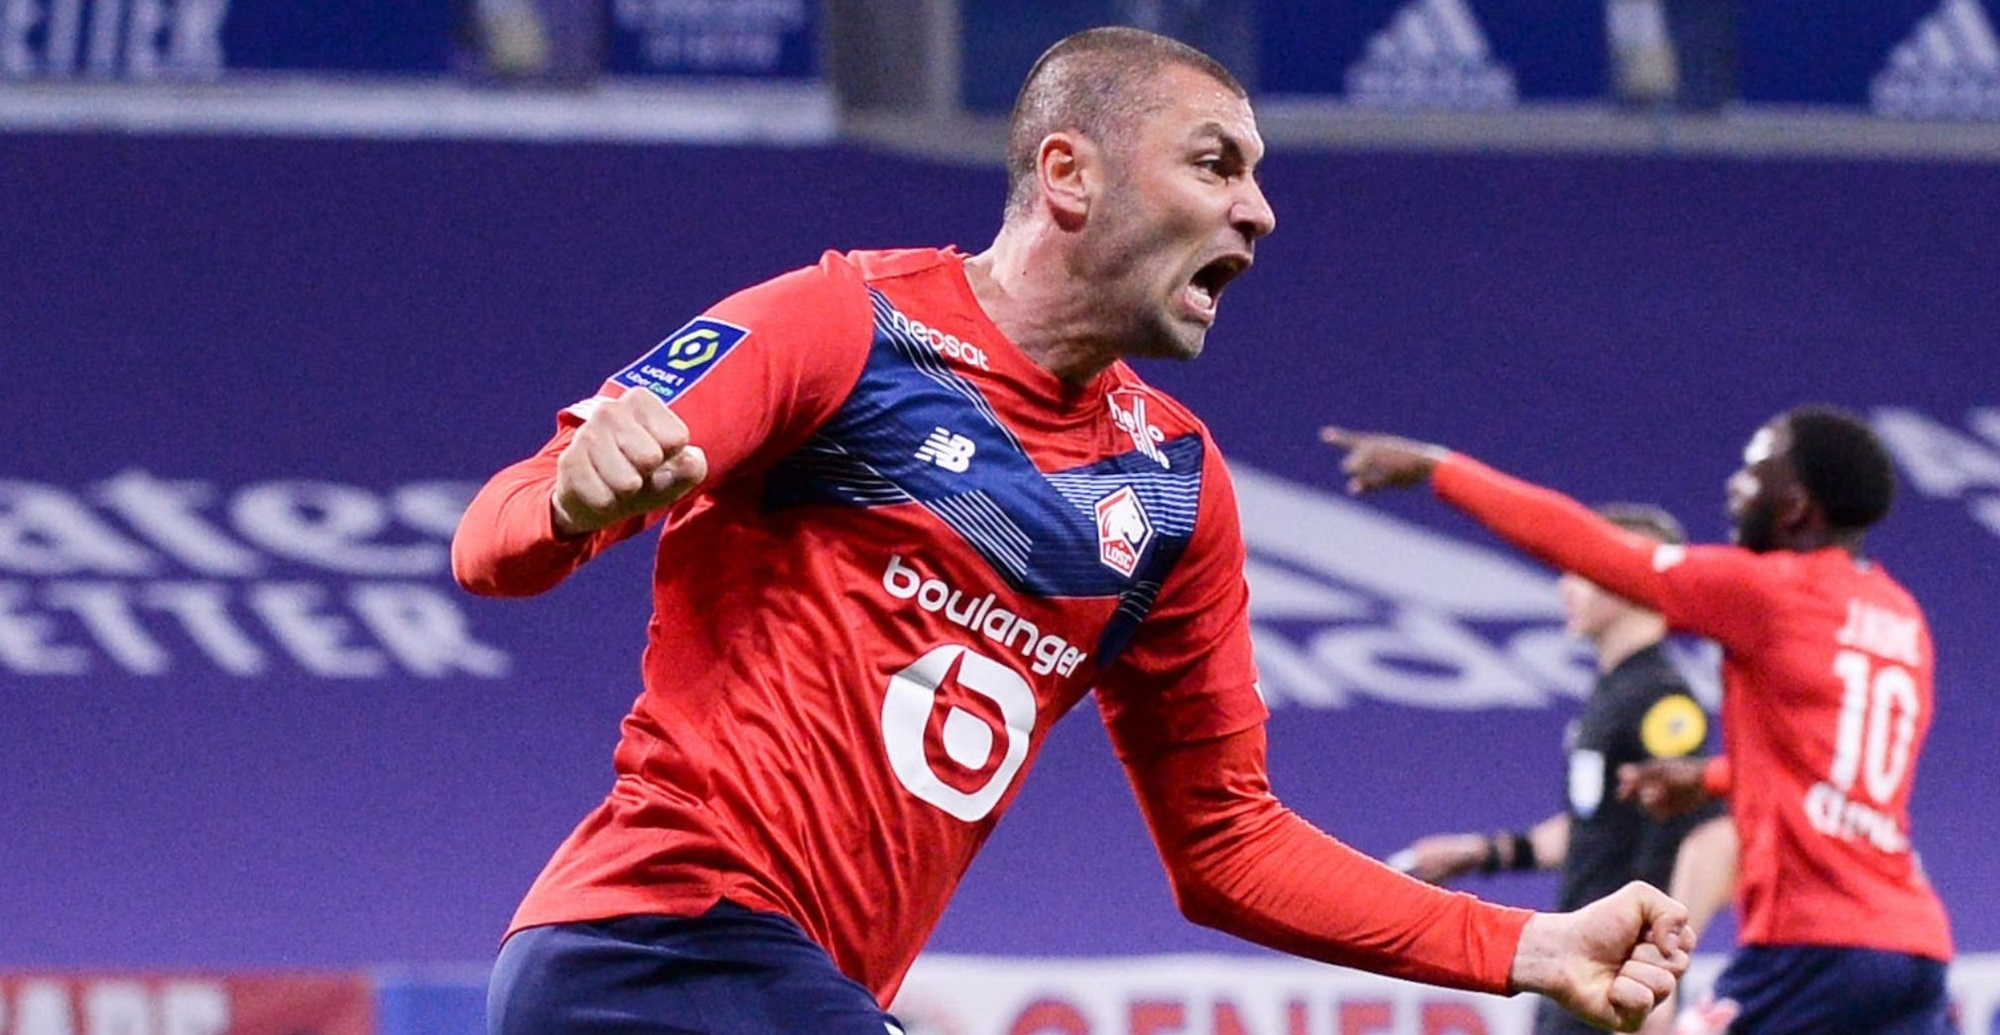 The evergreen Burak Yilmaz has been in sensational form for Lille